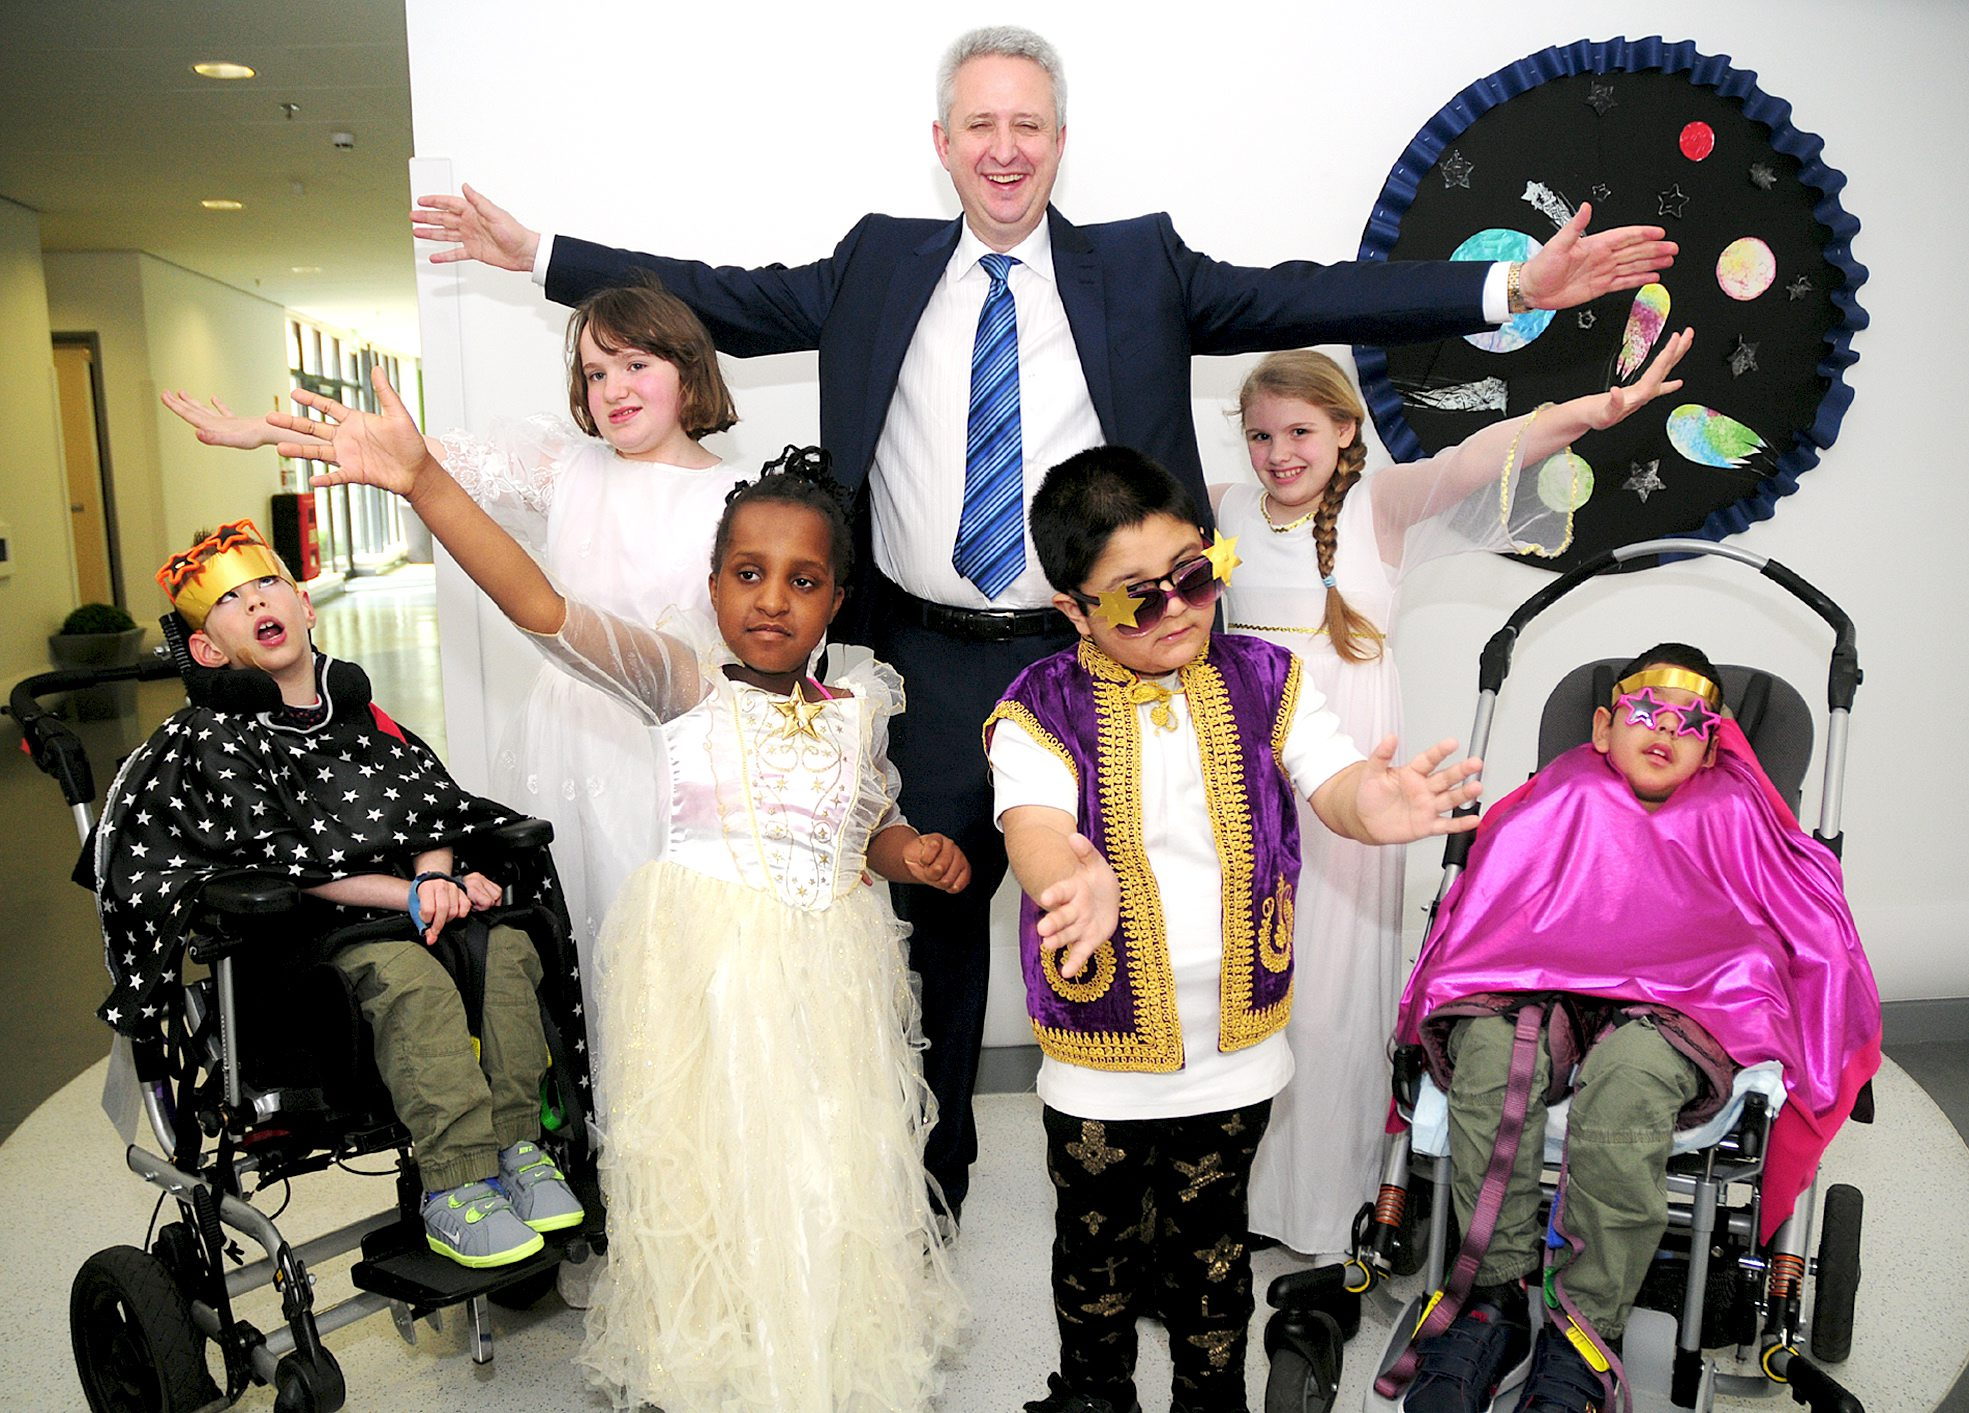 Back from left, Lochlan Riddel (aged eight), Isabella Clarke (aged 11), Ivan Lewis MP, Amber Whittaker (aged nine) and Ali Razabutt (aged nine). Front from left, Jasmin Gittens (aged eight) and Adeel Farooq (aged eight)